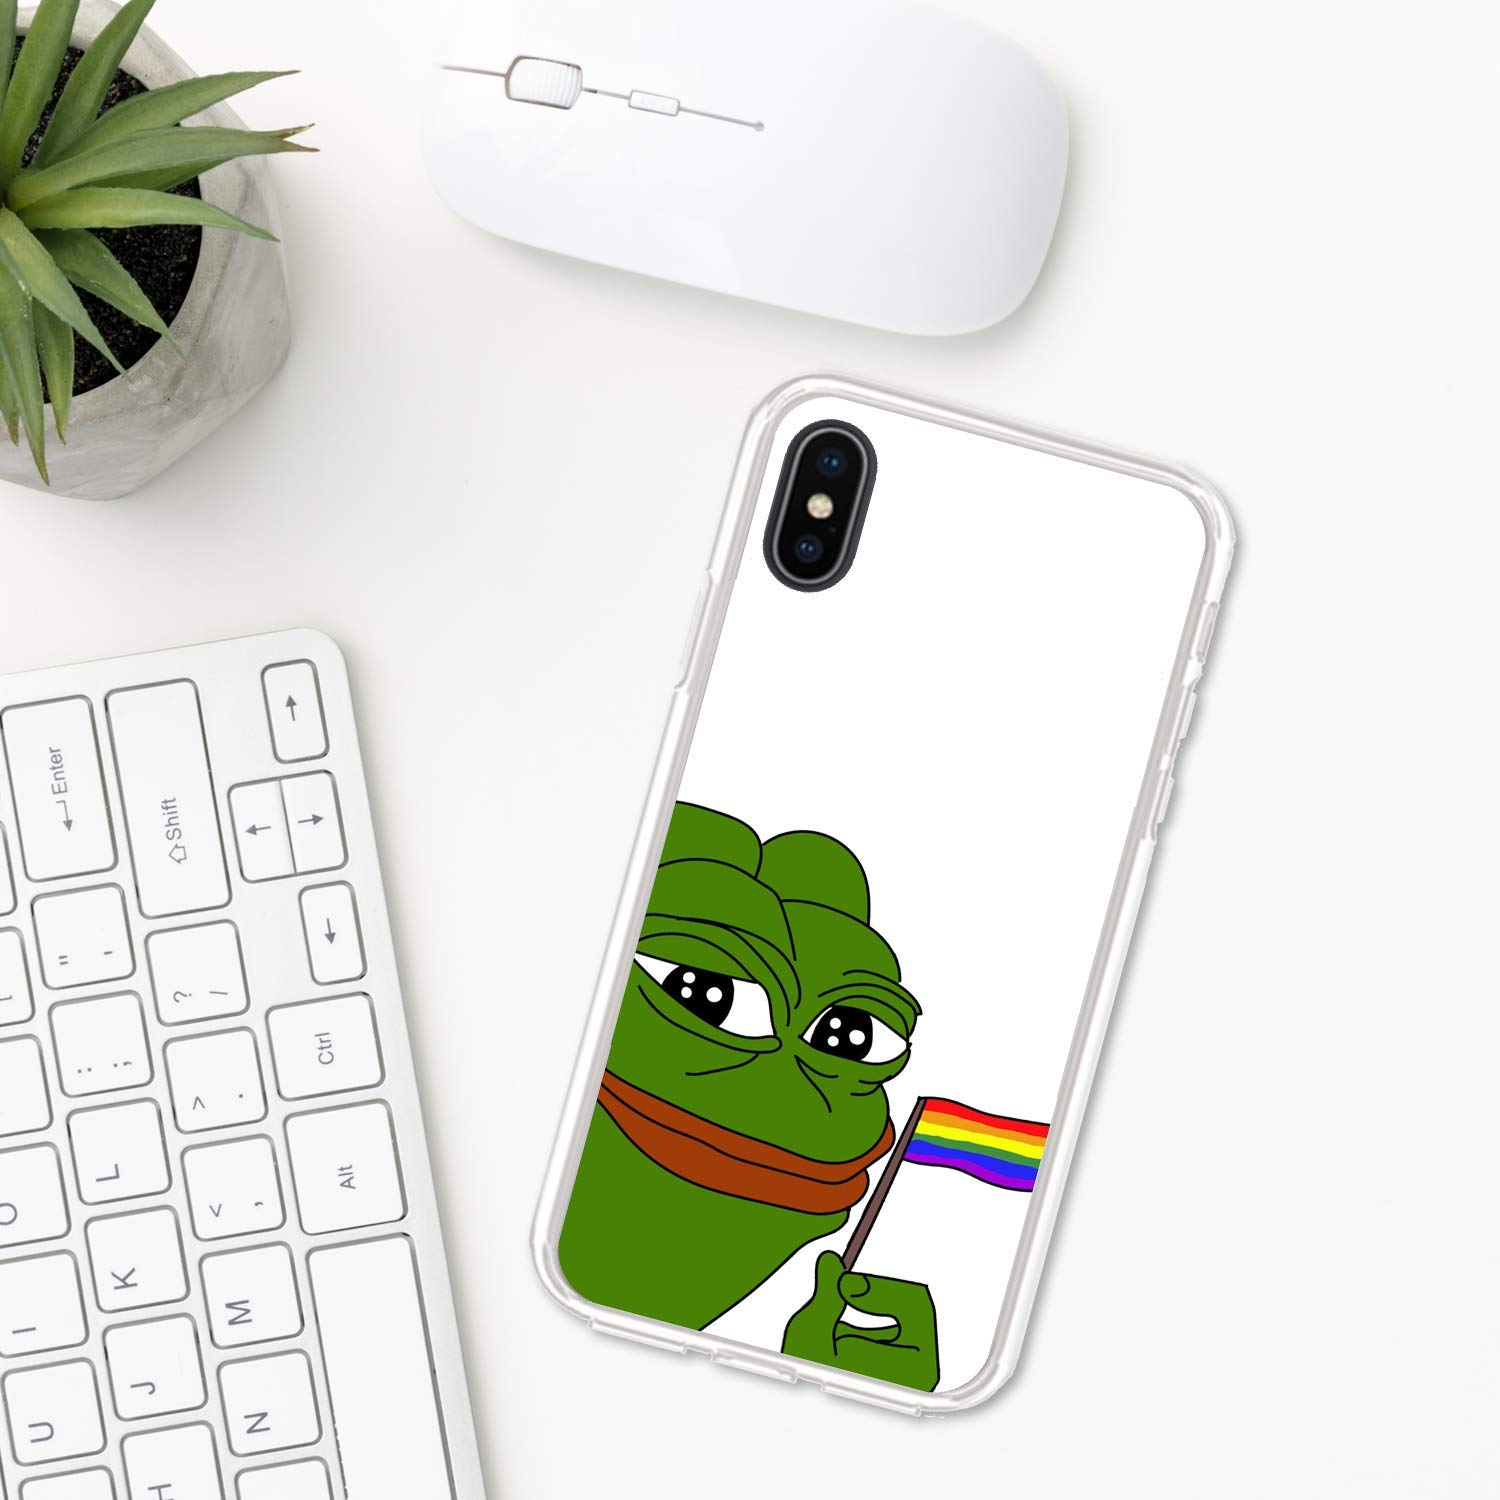 Pepe the Frog iPhone case XR 11 X XS MAX Pro 8 7 Plus 6 6s 5 5s se ten 10 Apple iPhone phone case gift angry meme sad face smile animals